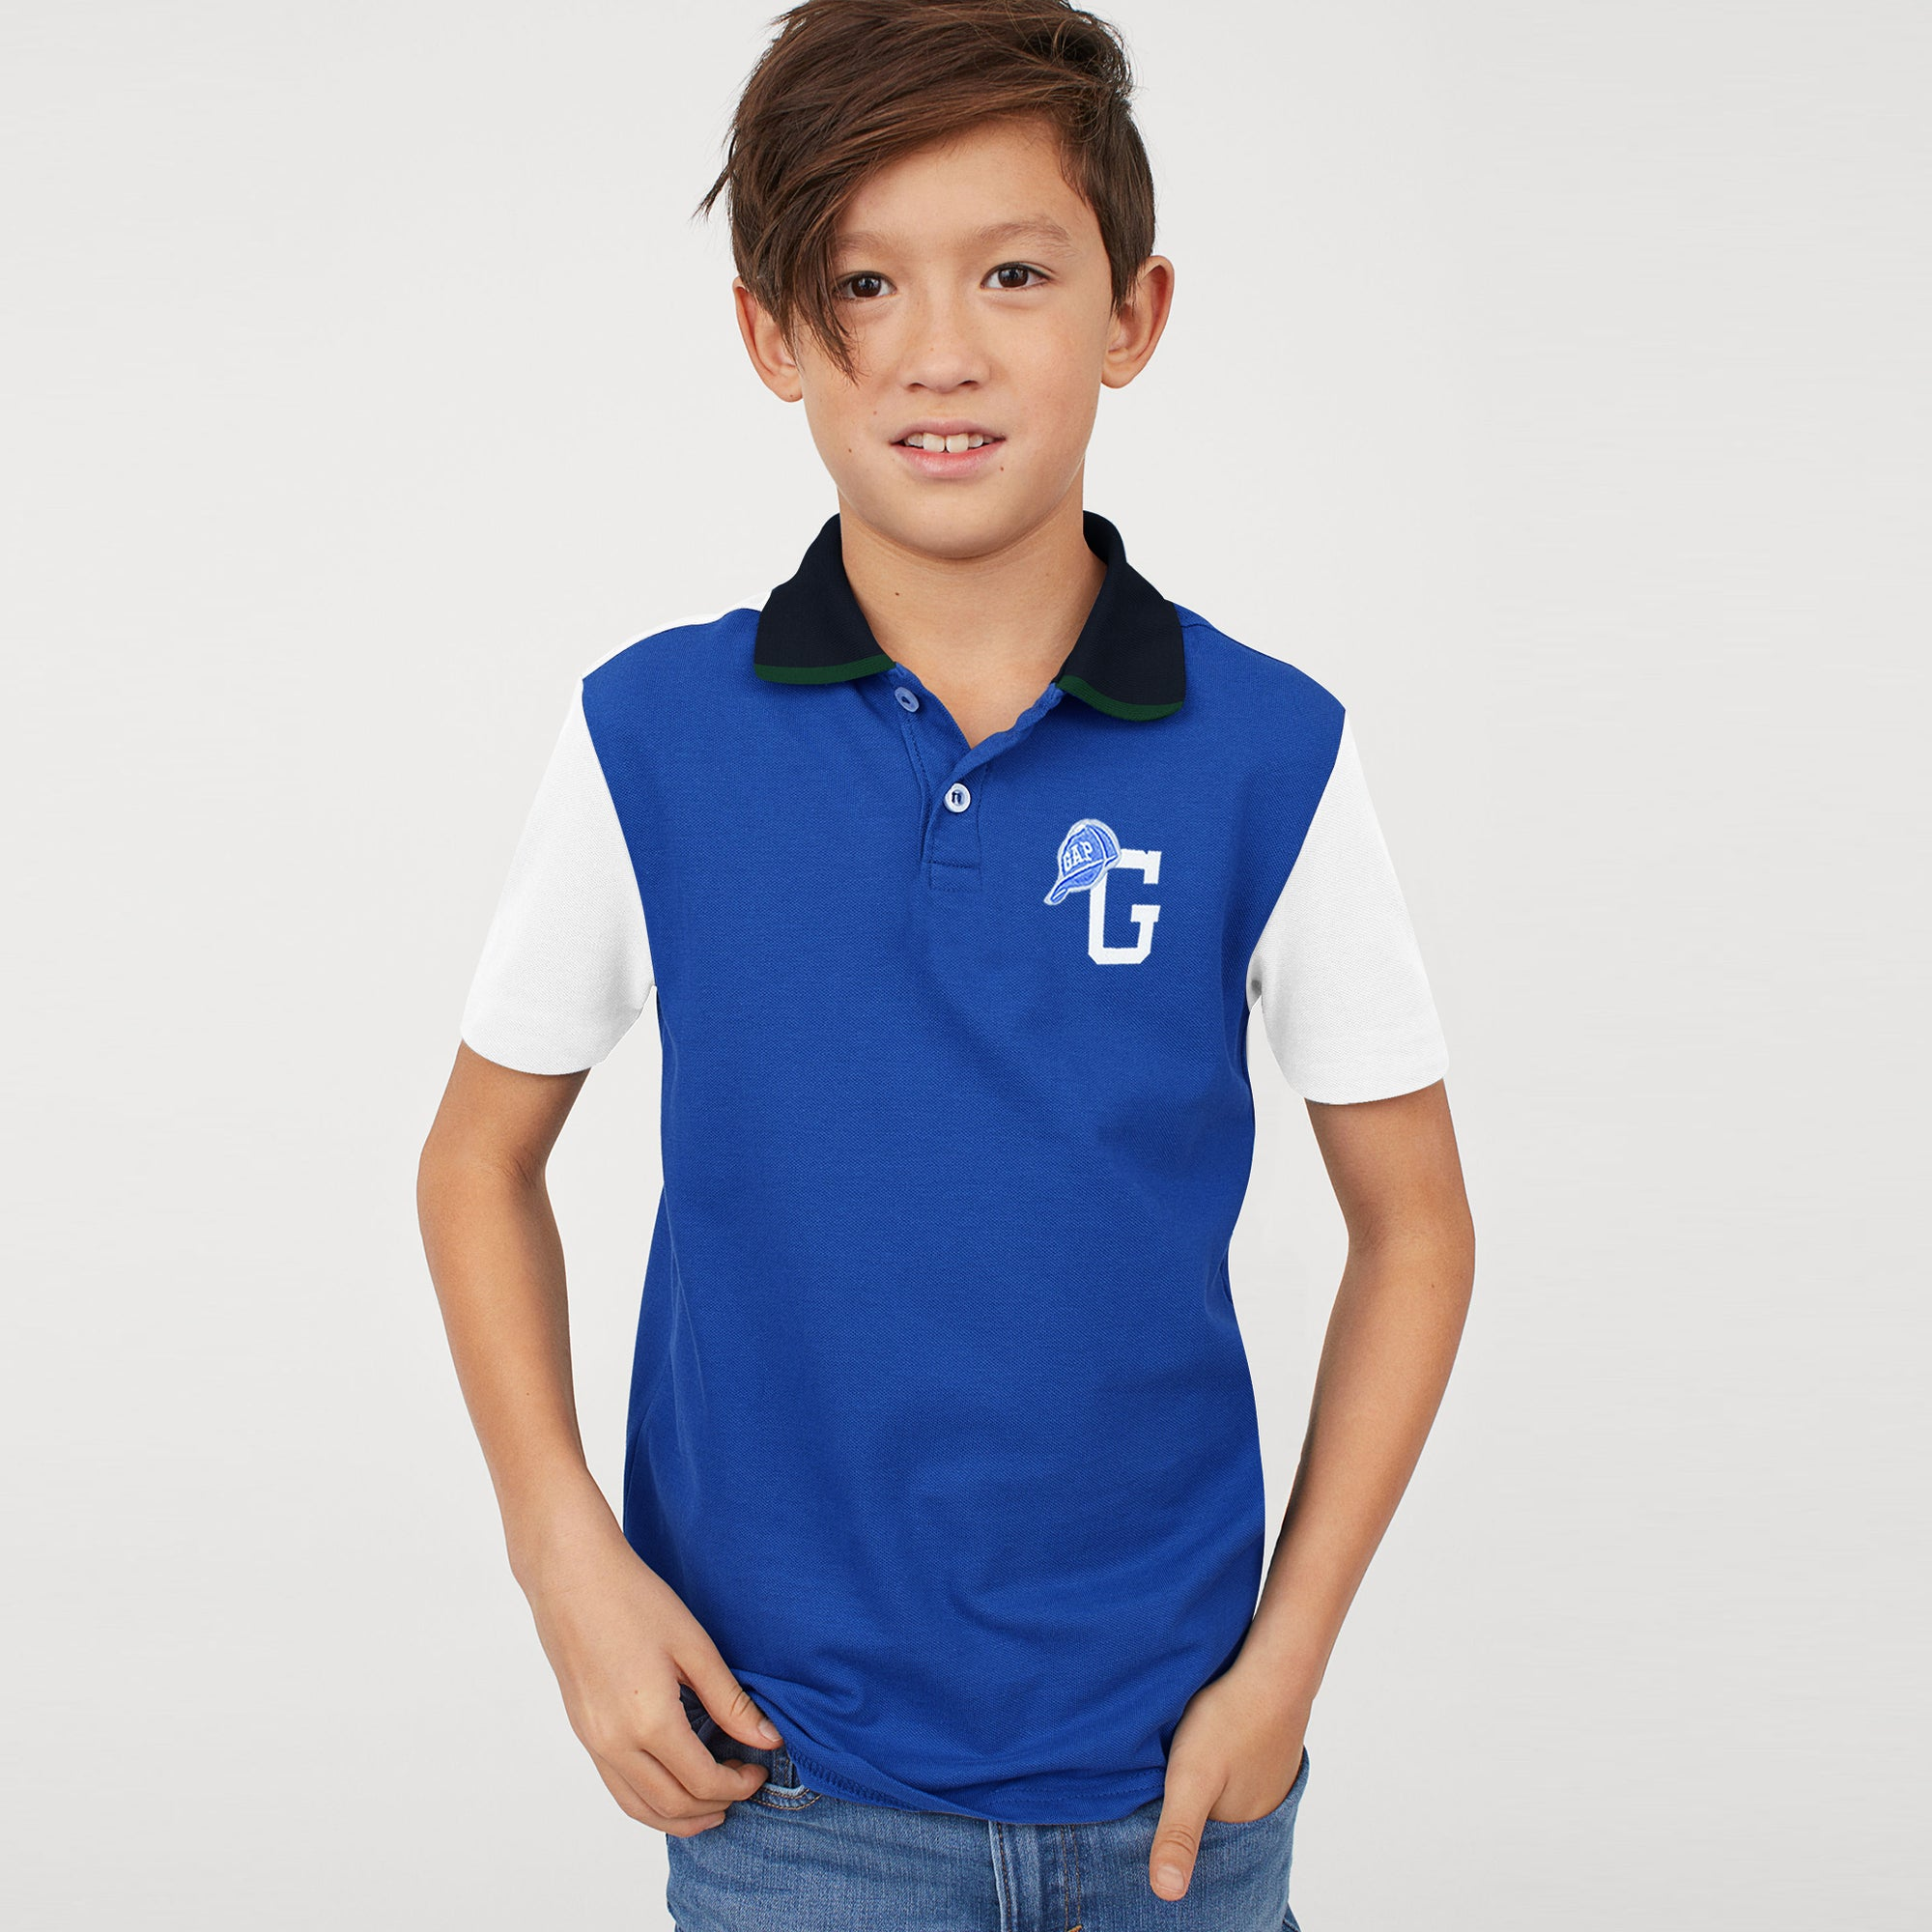 brandsego - GAP Half Sleeve P.Q Polo Shirt For Kids-Blue with White Panel-BE8515